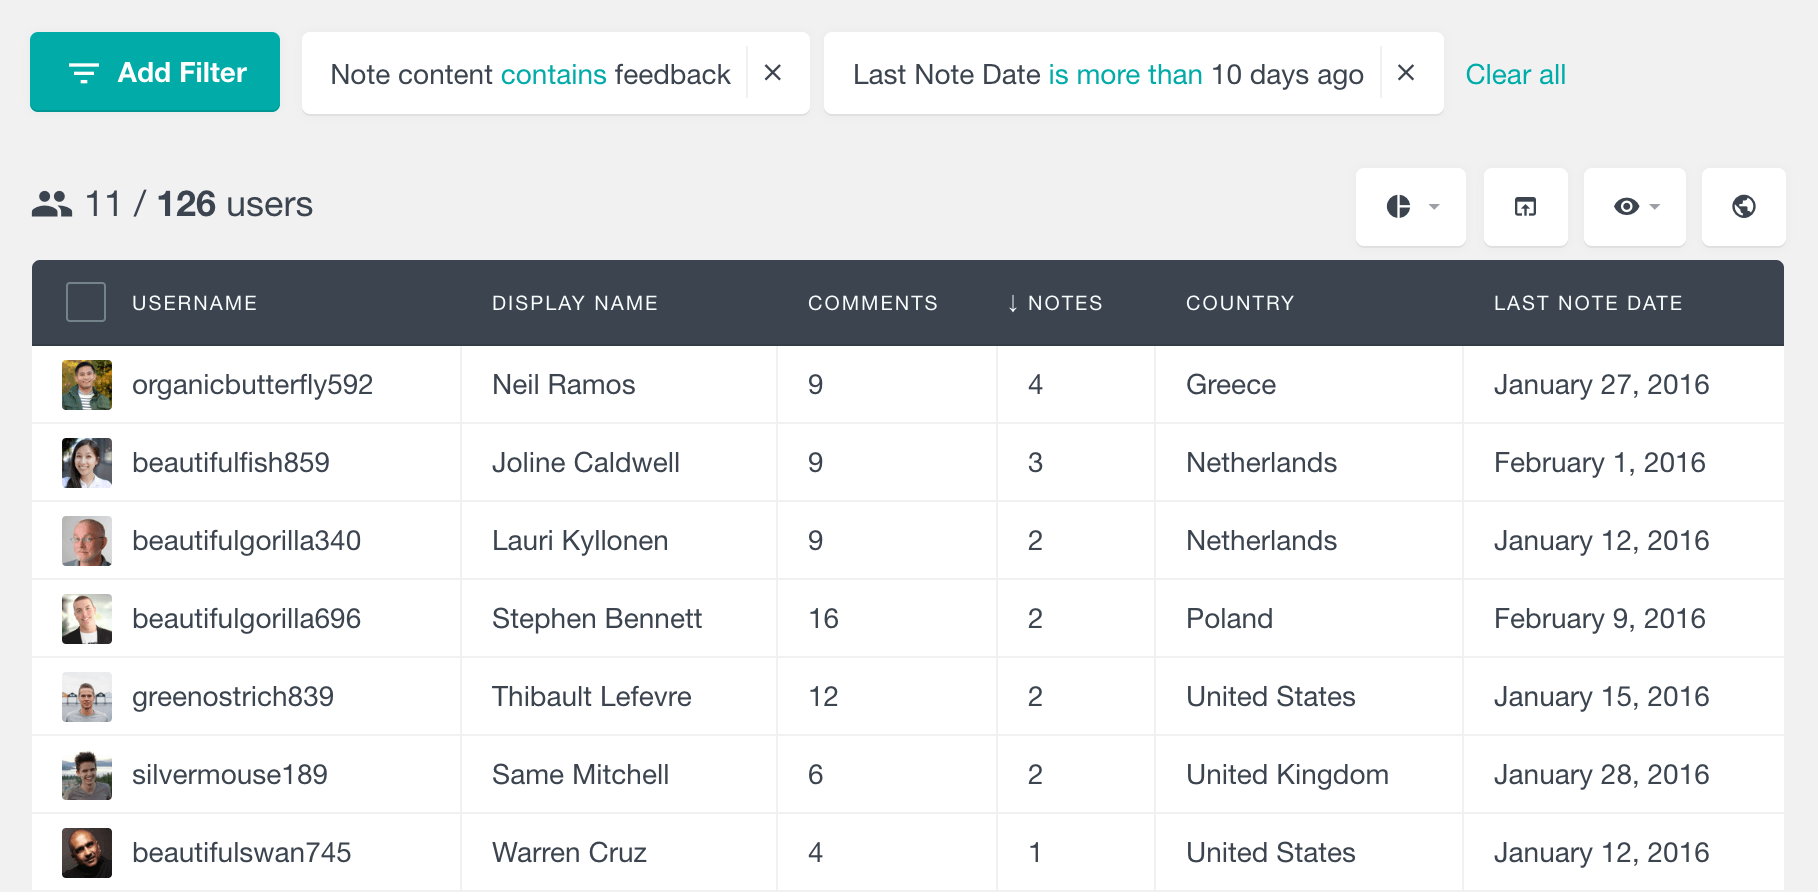 Filter WordPress users by note content and date